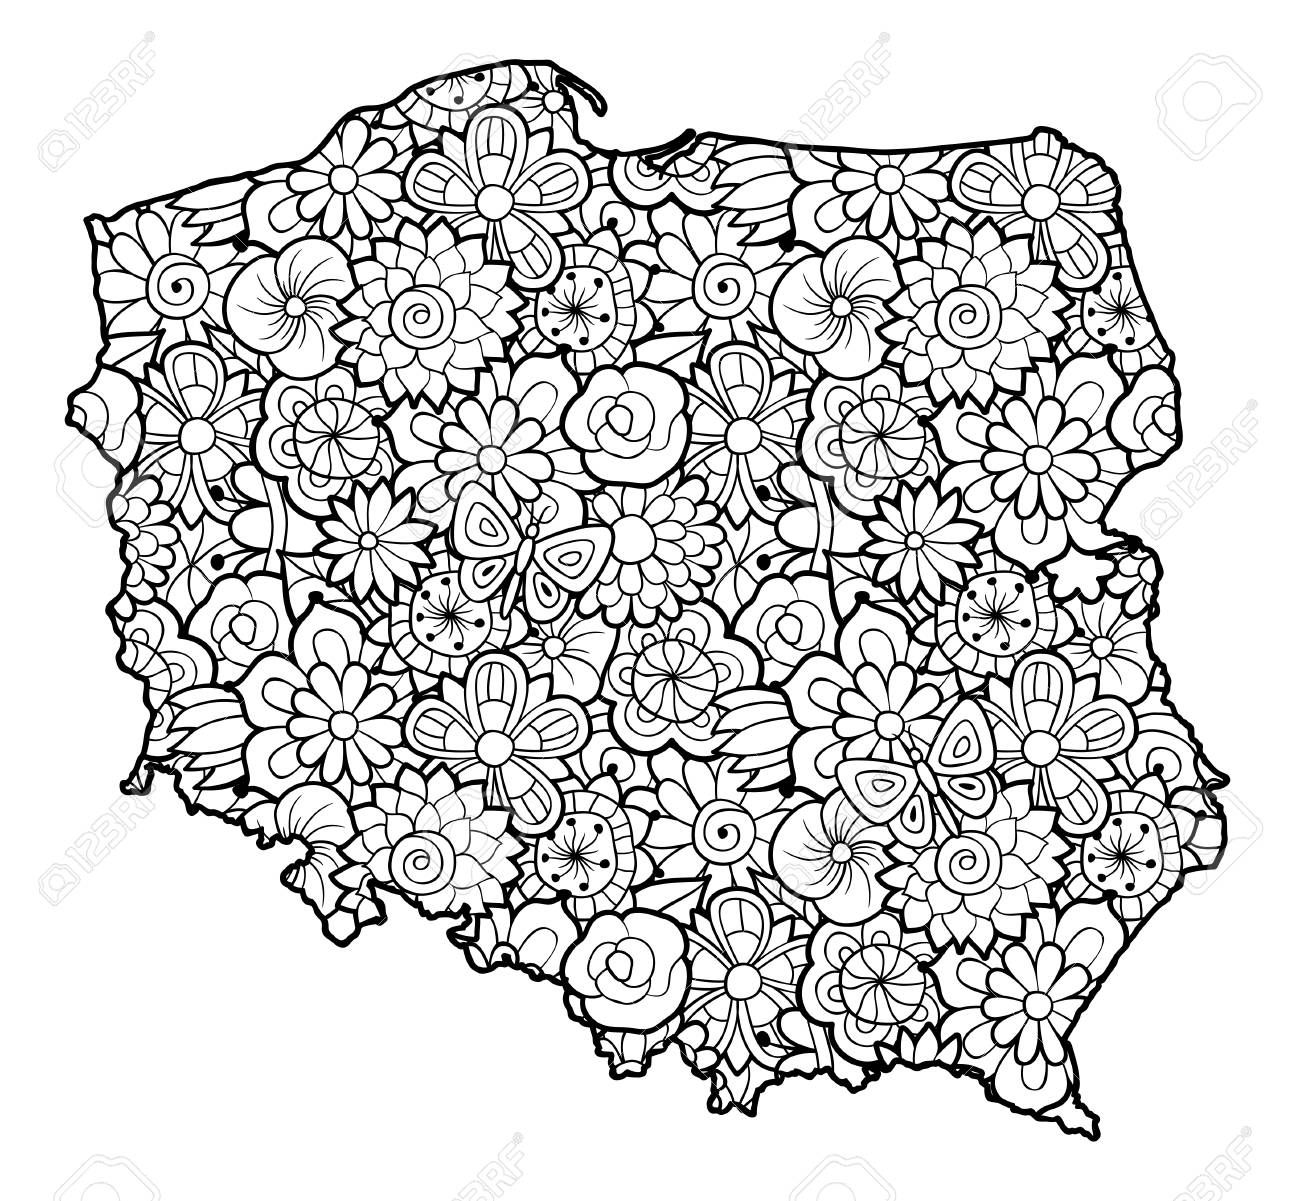 Map Of Poland With Flowers Black And White Vector Illustration